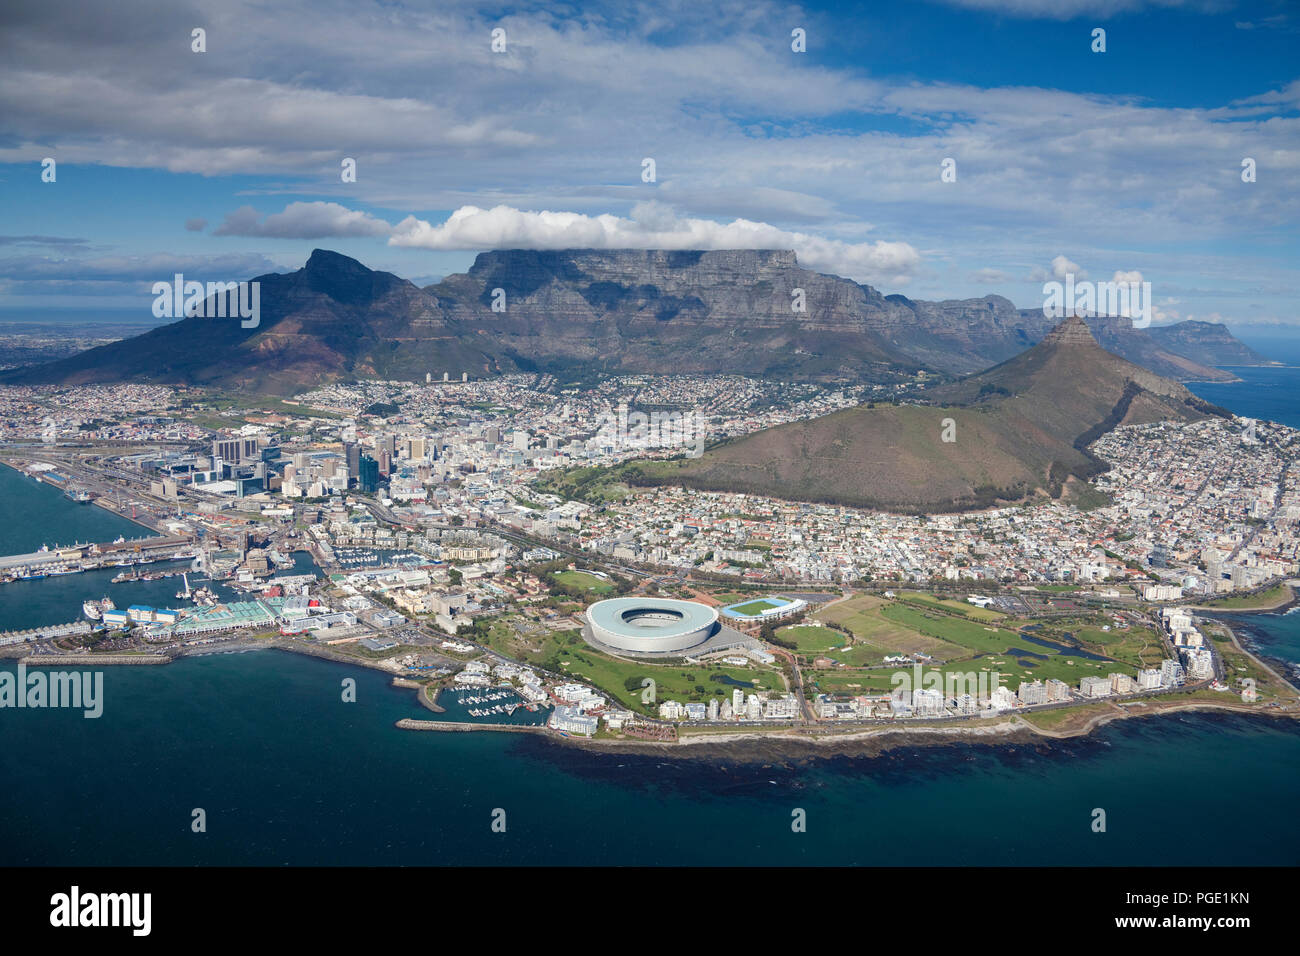 Cape Town Aerial View. Stock Photo